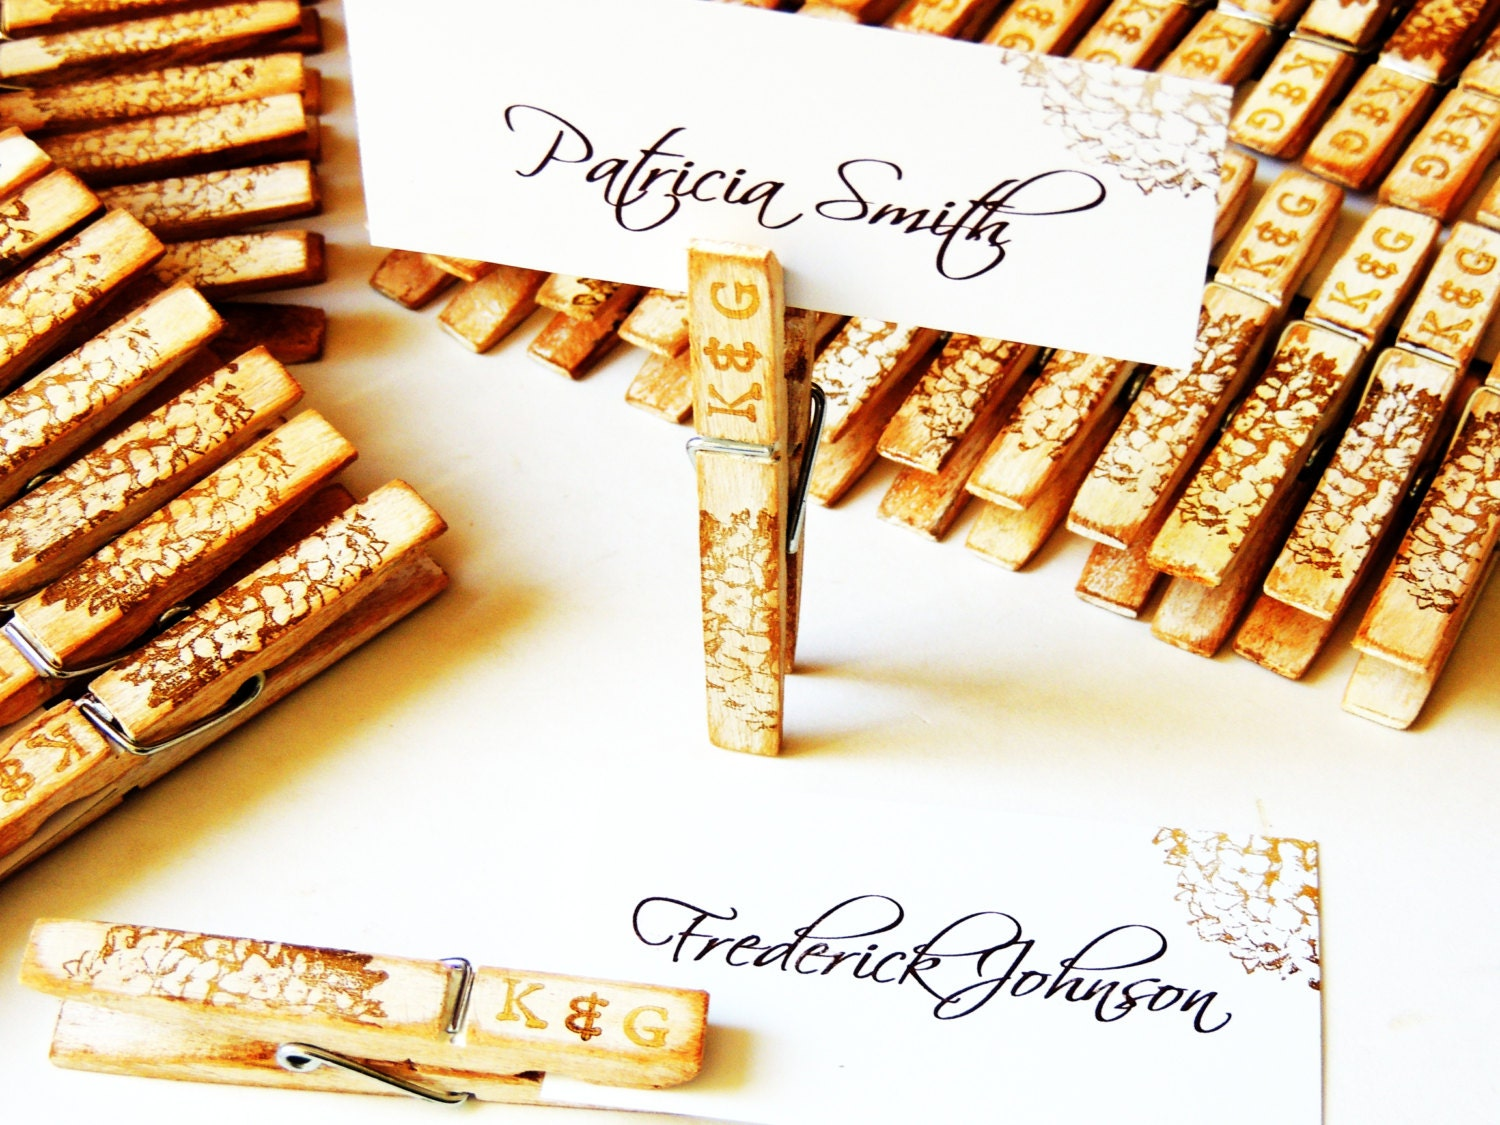 Wood wedding place card placecard holder personalized zoom solutioingenieria Image collections